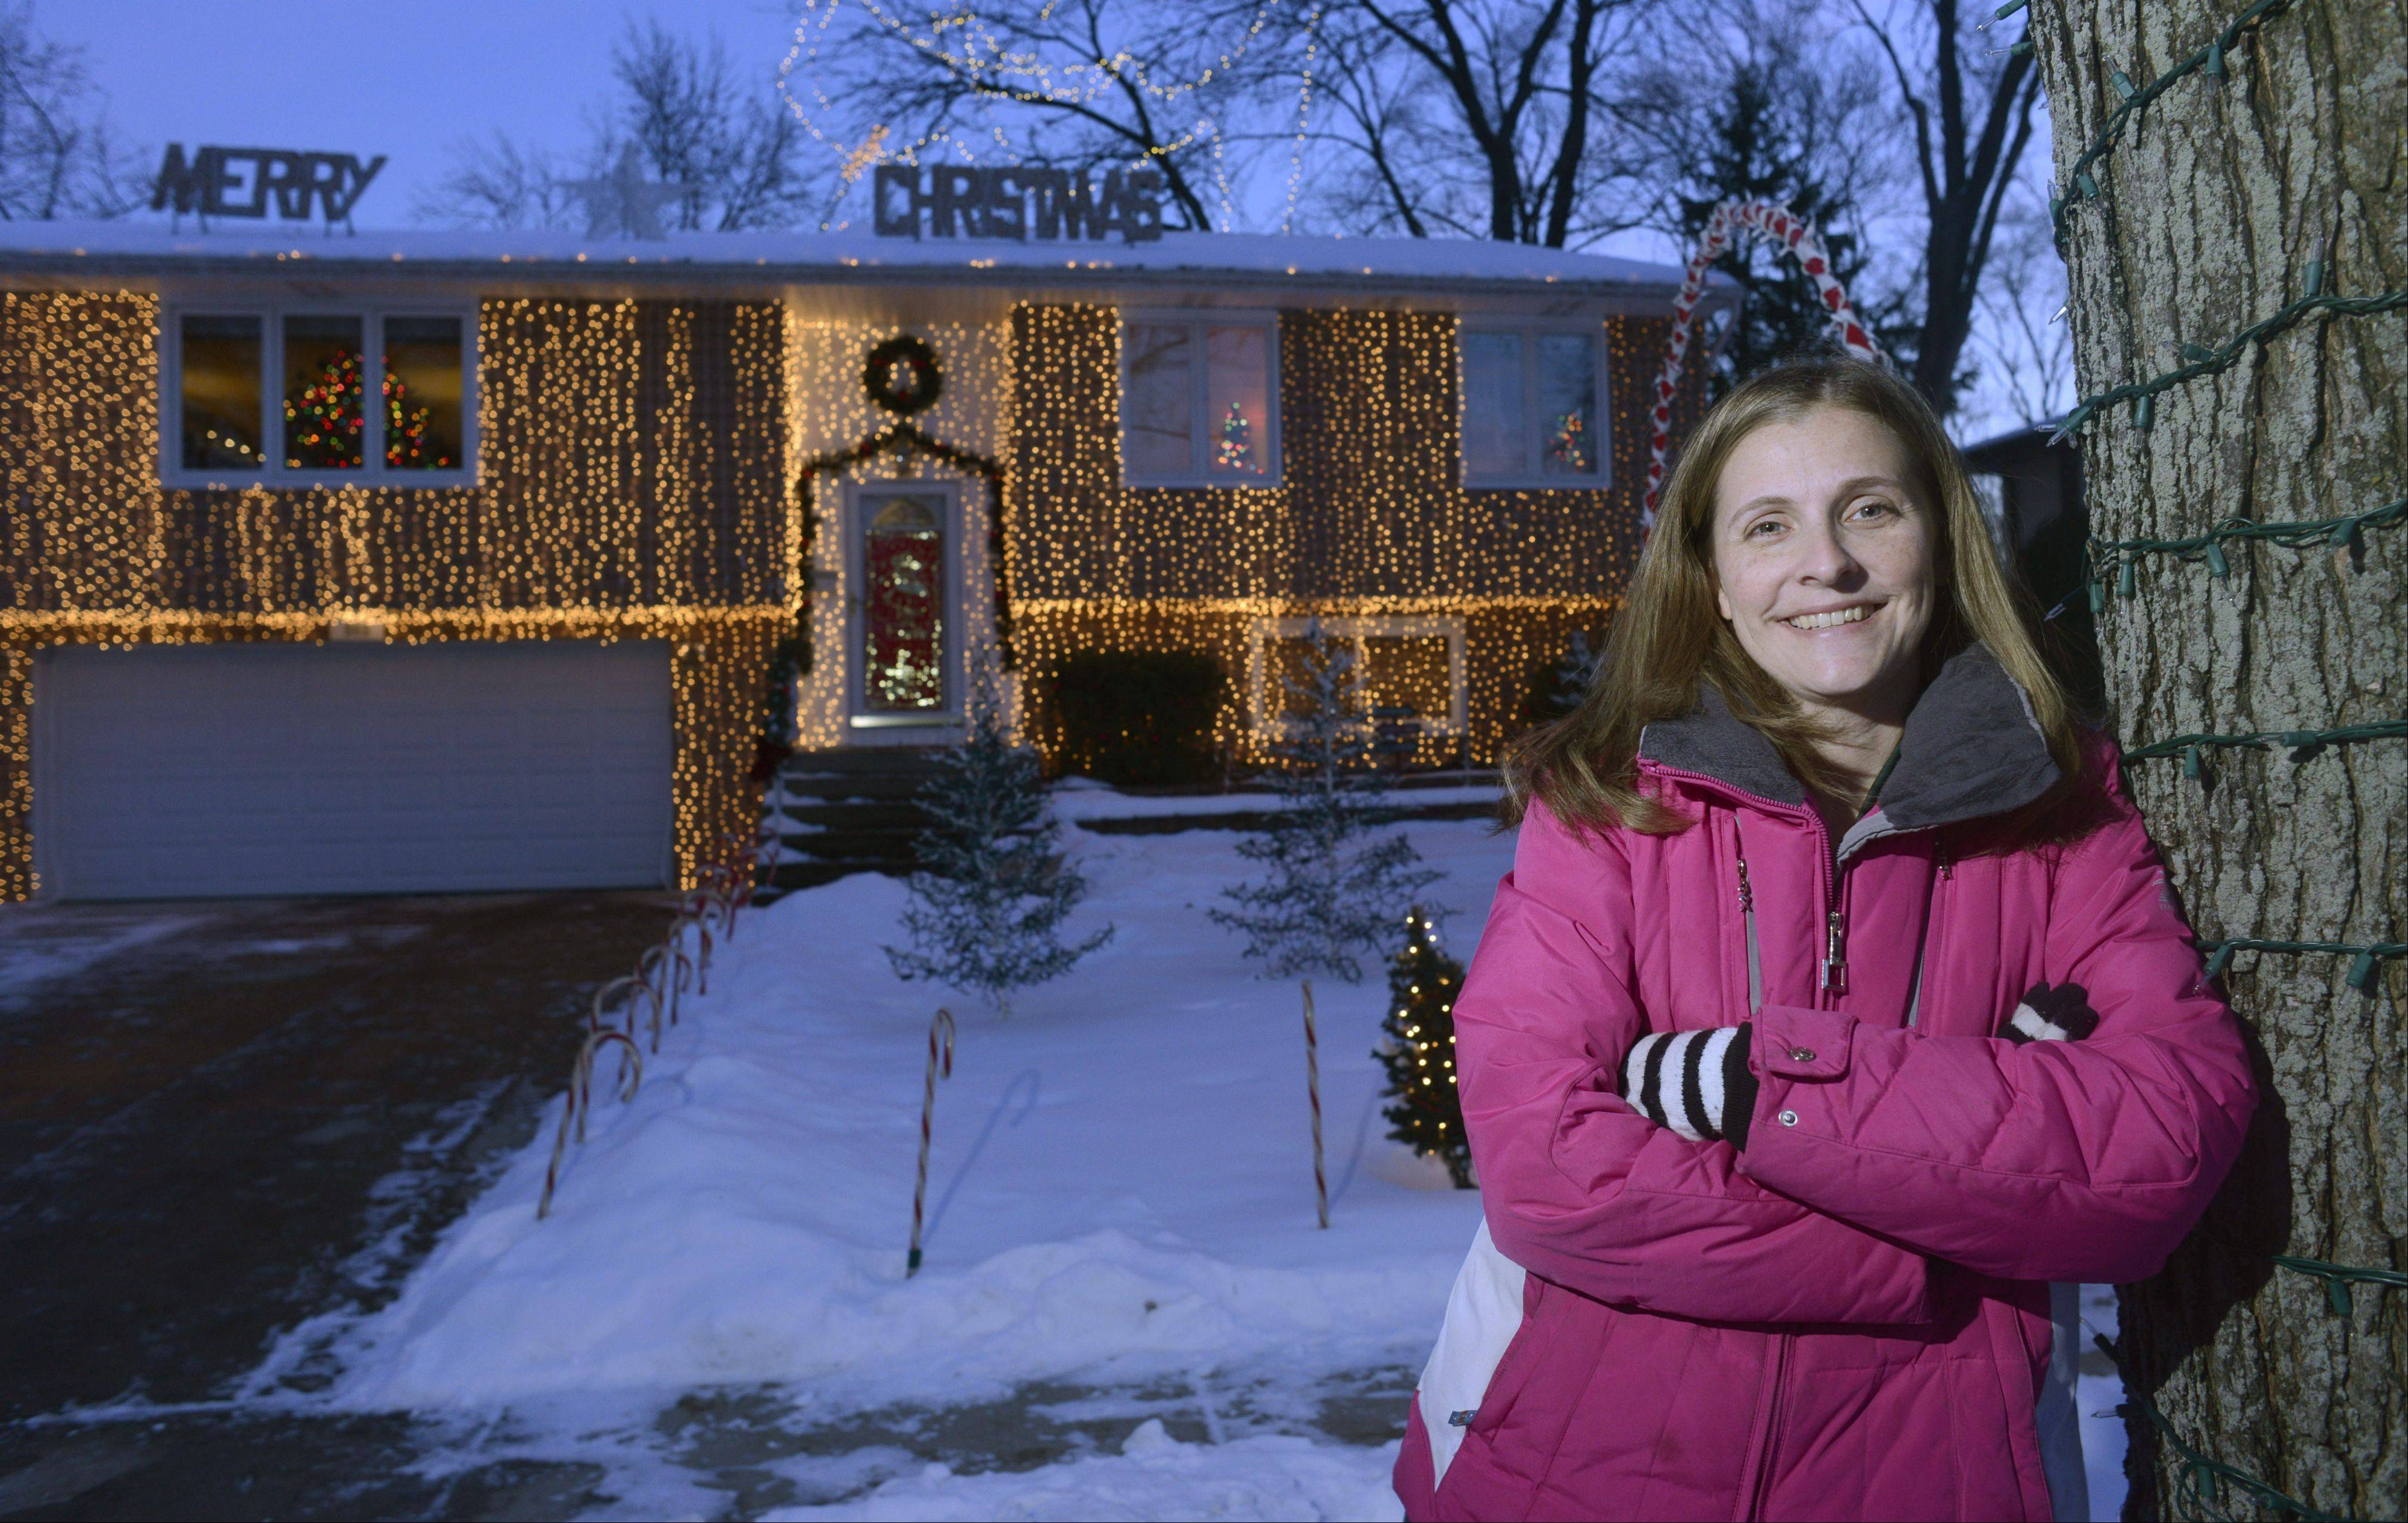 Heather Schluckbier of 503 Dartmouth Lane in Schaumburg is the winner of the Daily Herald Holiday Lights contest. She said winning a contest like this takes a lot of love for the holiday season, and a little bit of craziness.